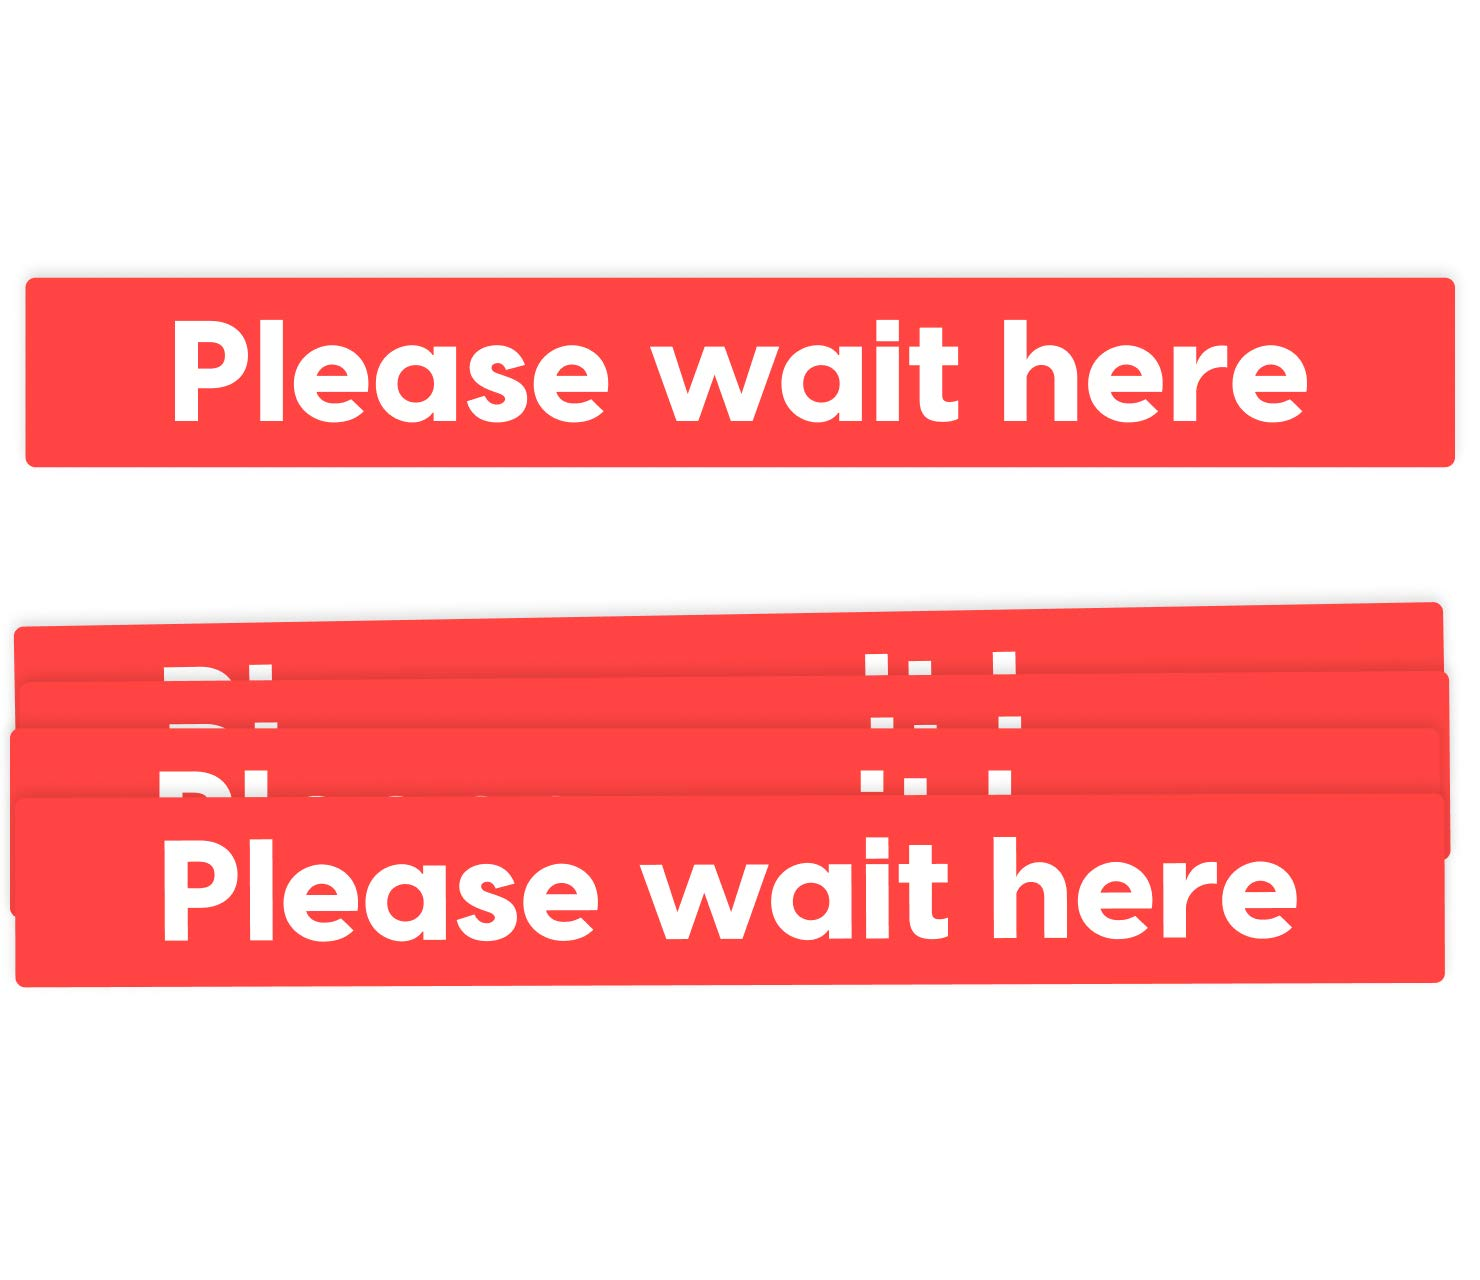 Social Distancing Floor Decals - Please Wait Here - Removable Waterproof Adhesive Anti-Slip - Designed in The U.S.A. - 5 Pack (26x3.5 Bar)